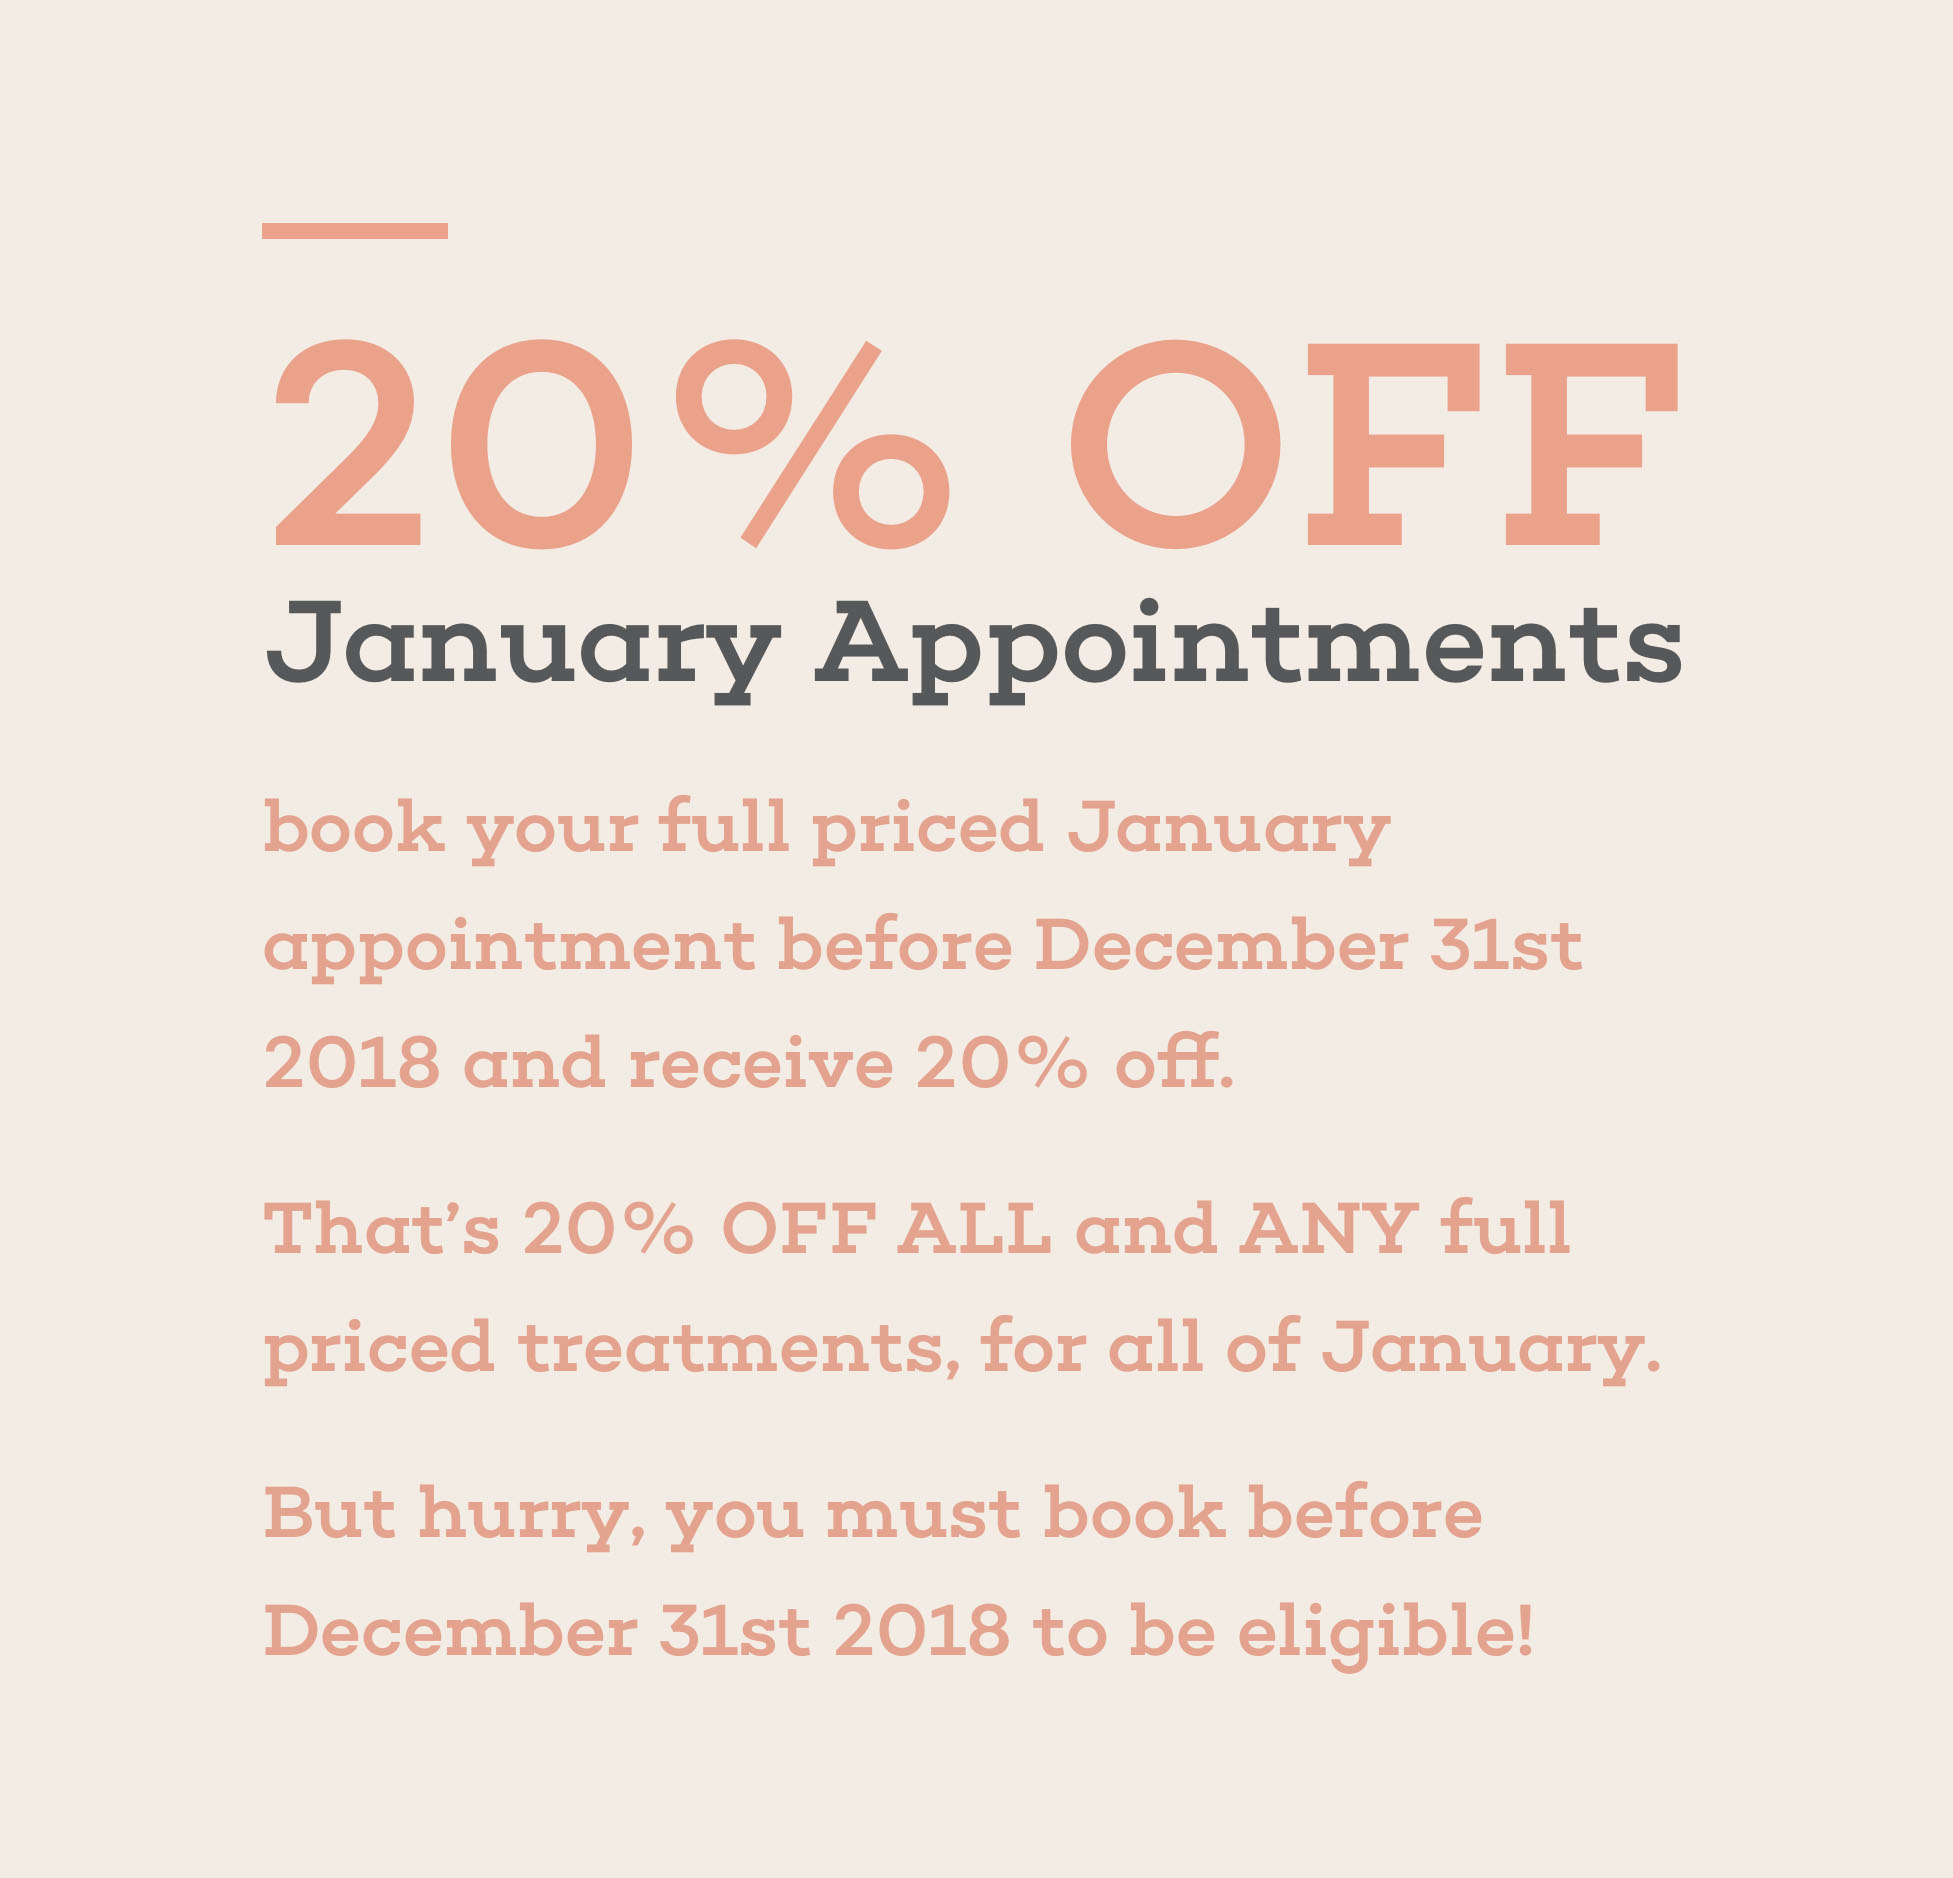 20% off, January Appointments, book your full priced january appointment before december 31st 2018 and received 20% off. That's 20% off all and any full priced treatments, for all of january. But hurry, you must book before december 31st 2018 to be eligible.